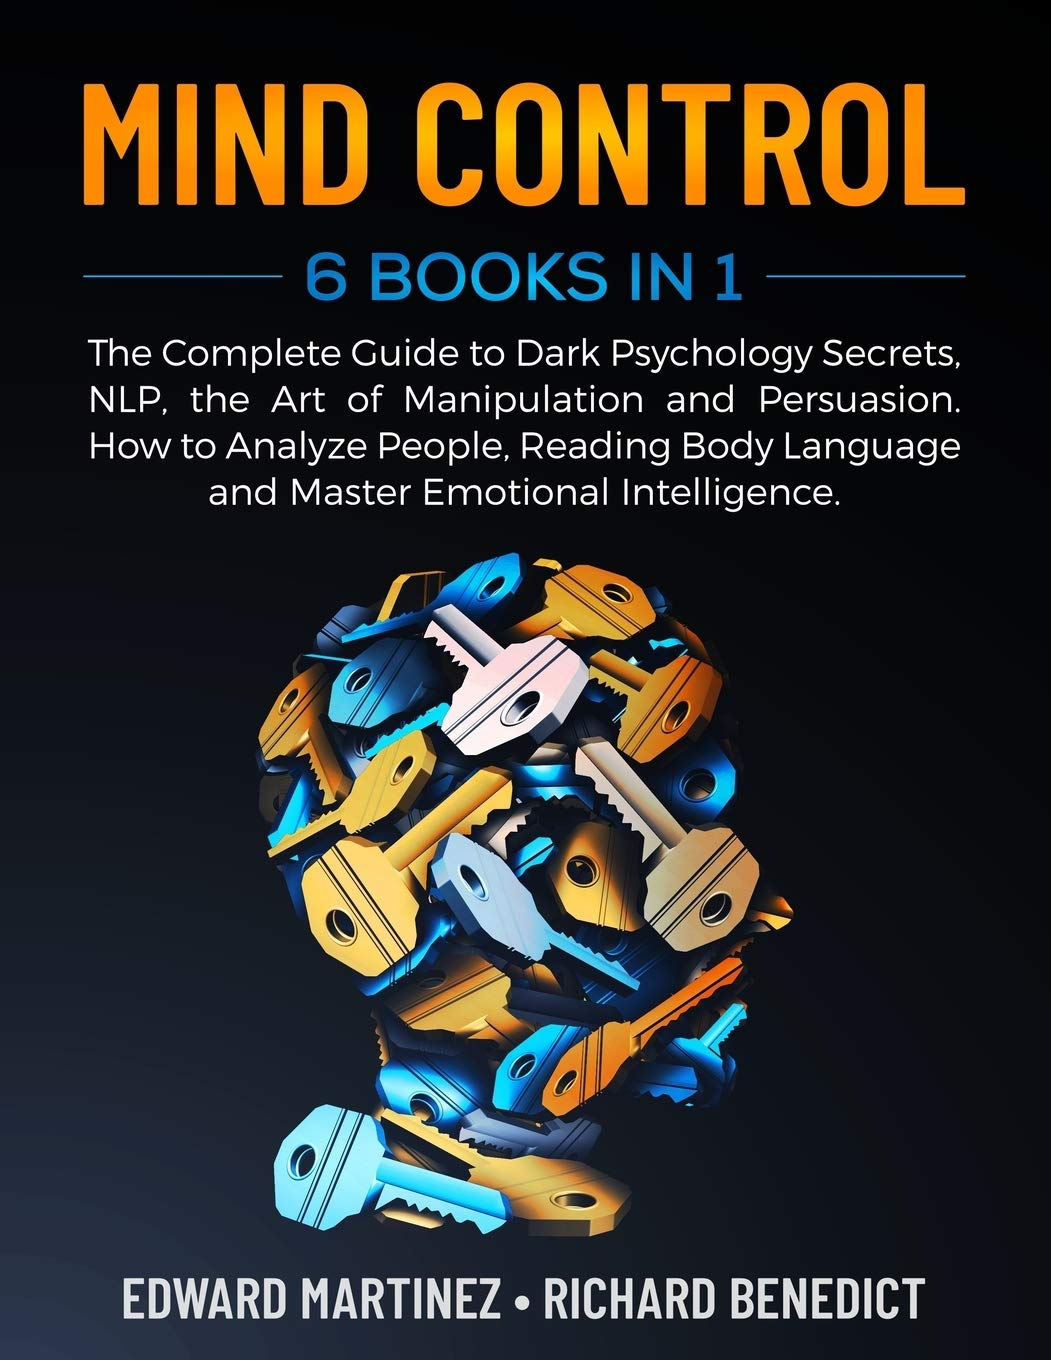 Image OfMIND CONTROL: 6 Books In 1: The Complete Guide To Dark Psychology Secrets, NLP, The Art Of Manipulation And Persuasion. Ho...